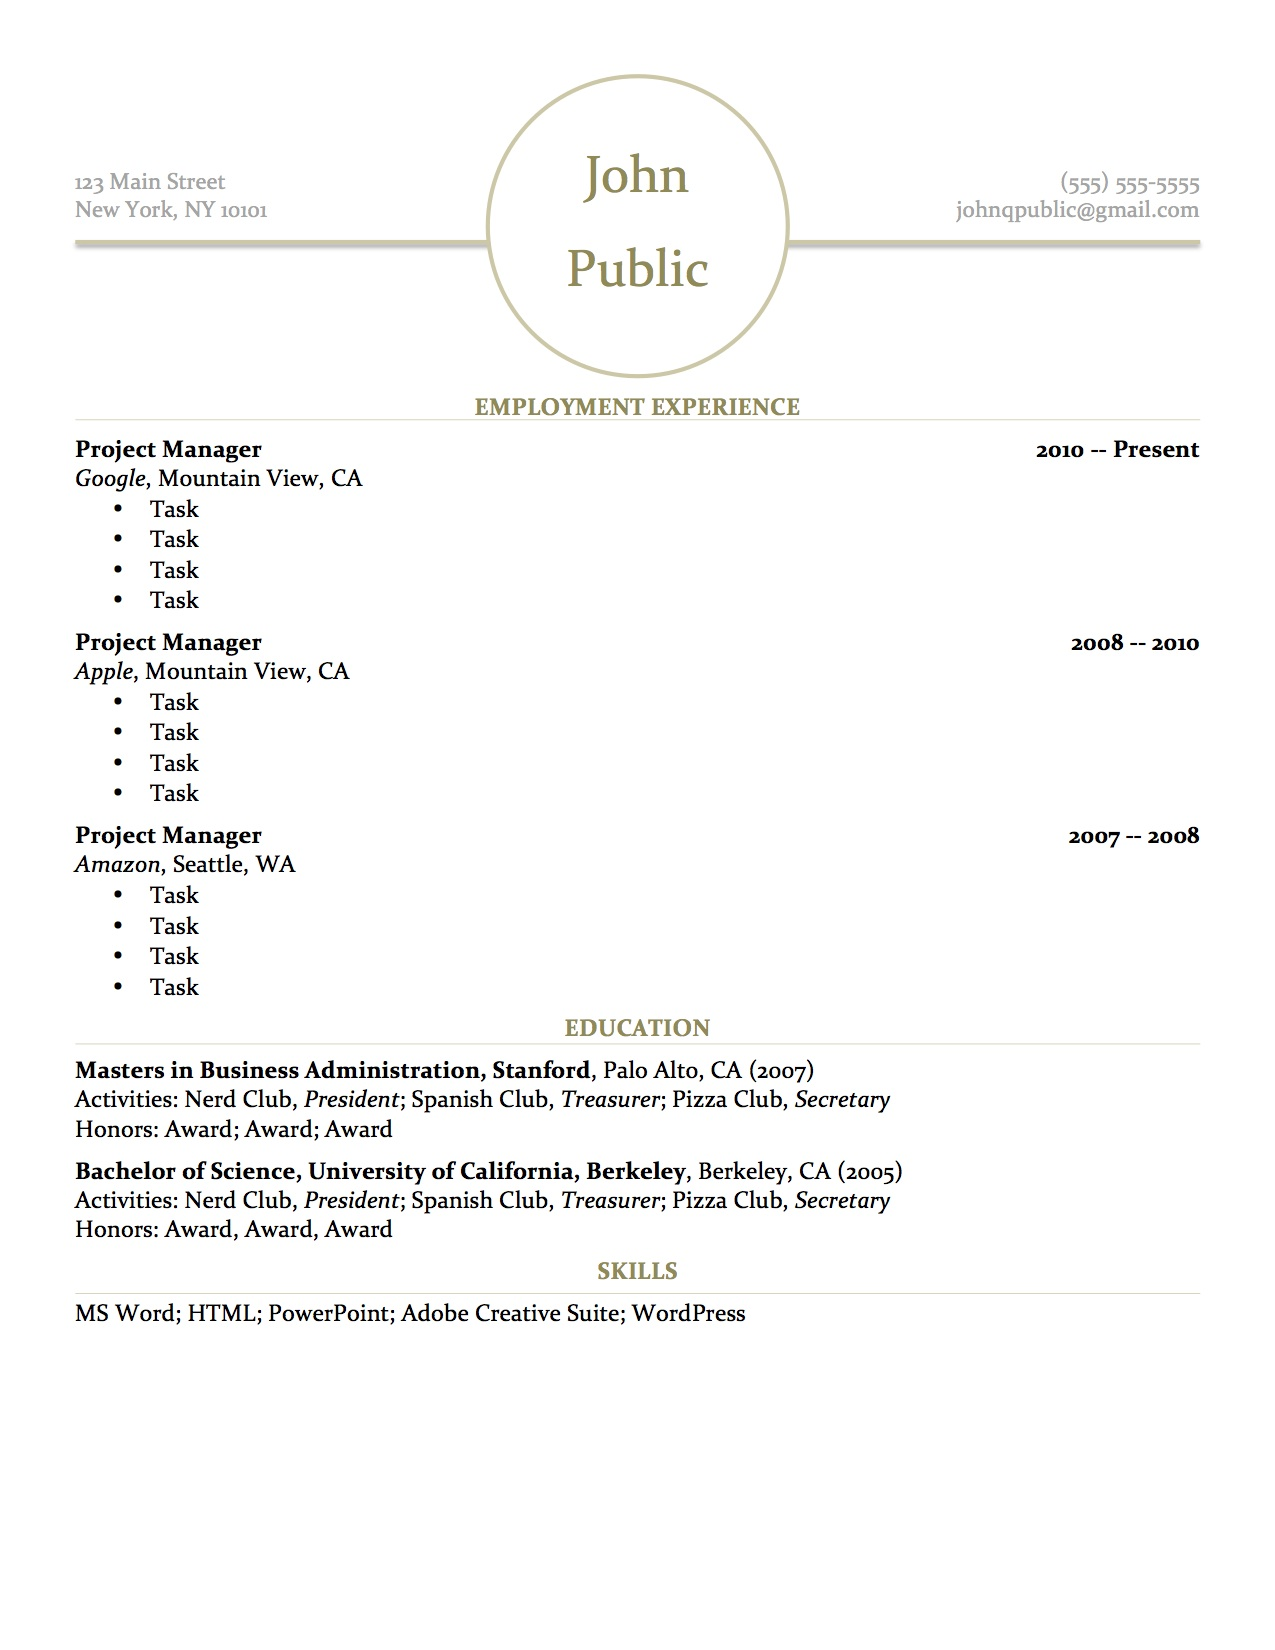 free resume search database for employers professional resumes